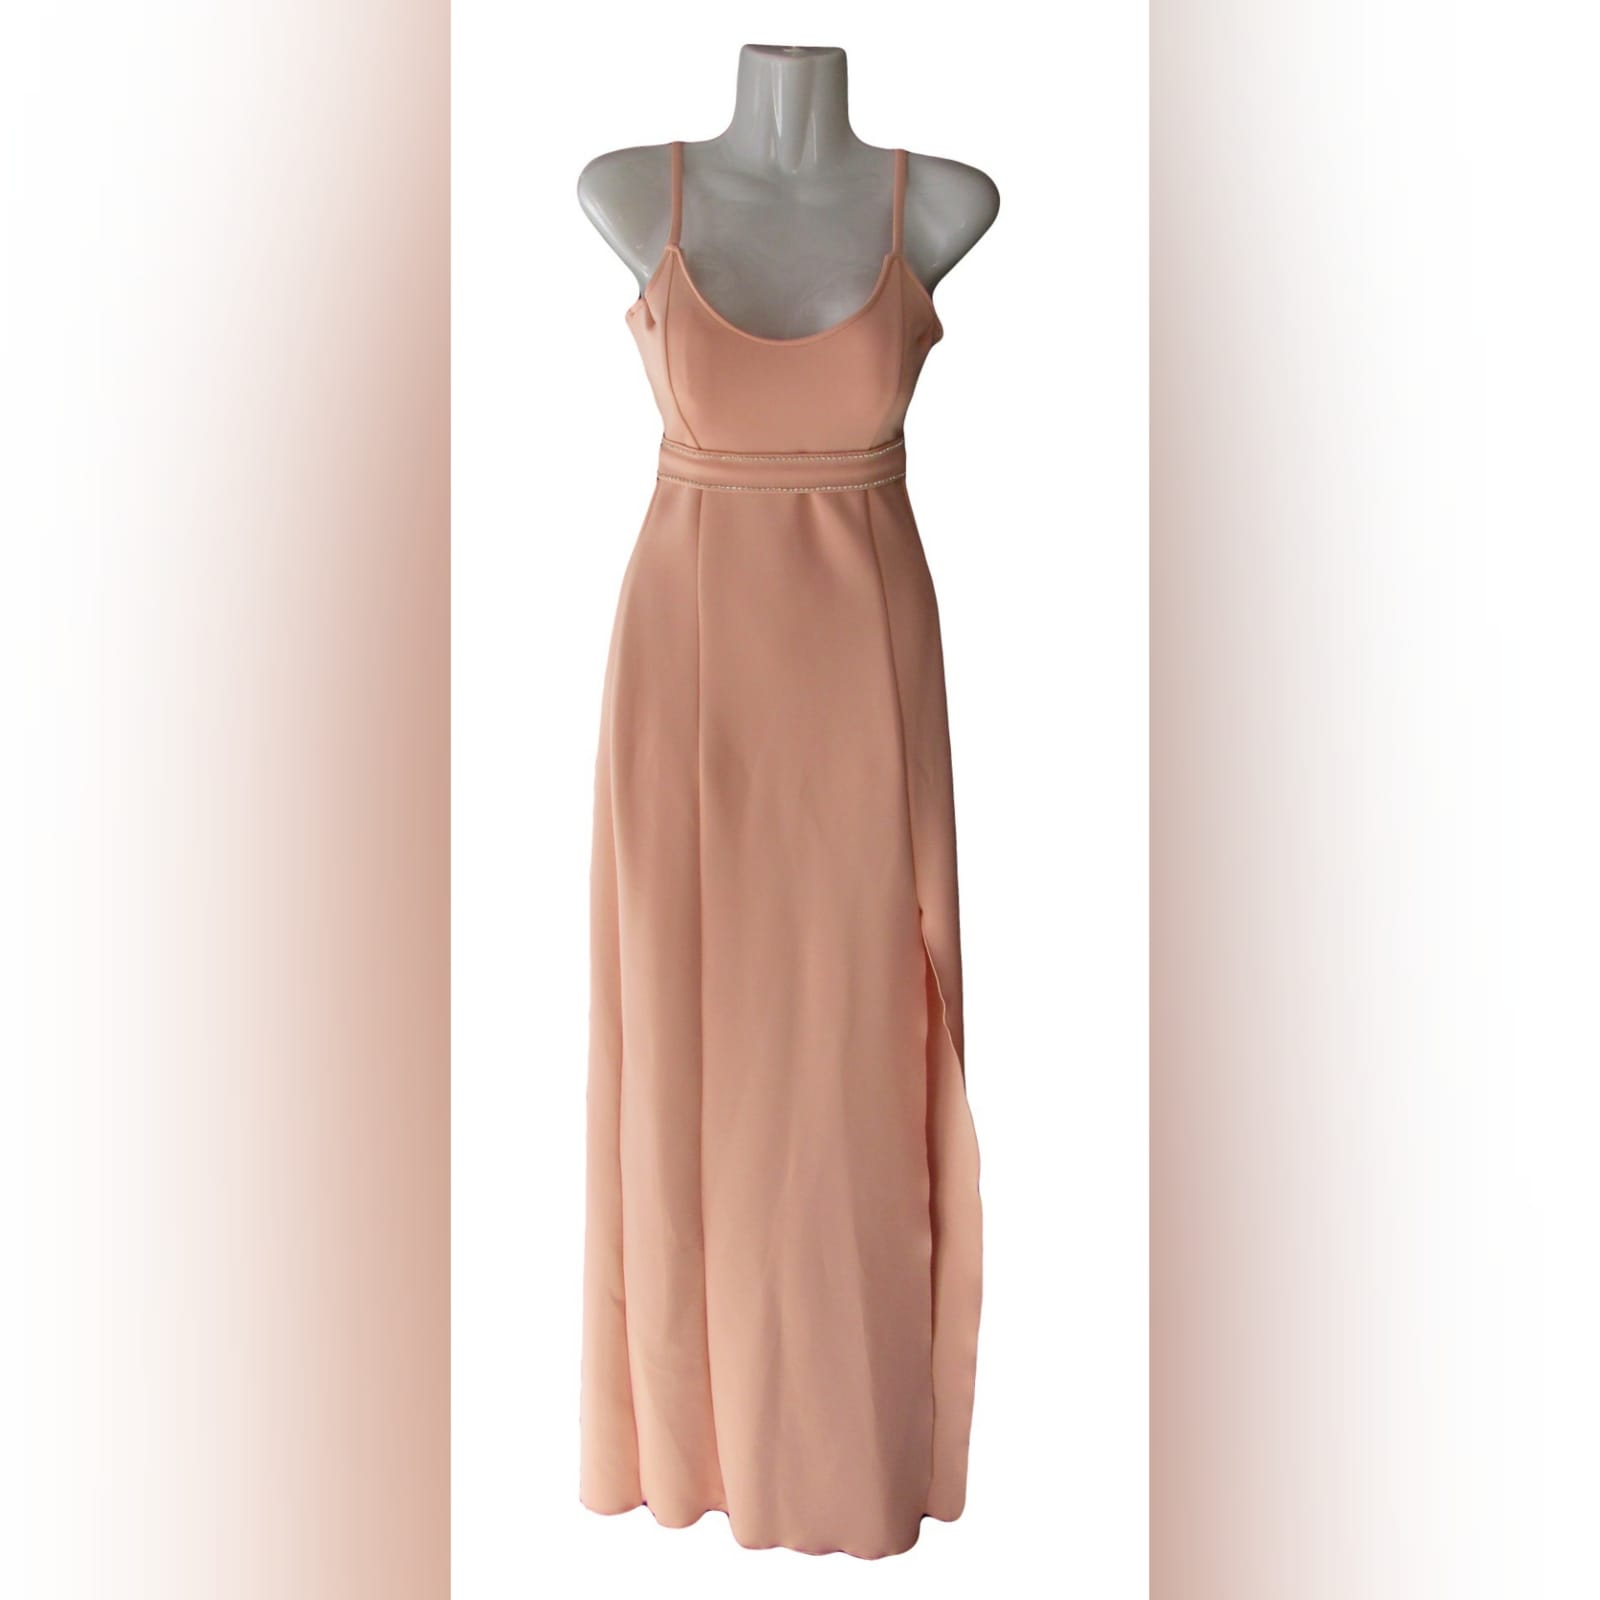 Long fitted peachy nude smart casual panel dress 3 long fitted peachy nude smart casual panel dress with a slit, shoulder straps and a removable waist belt detailed with diamante.